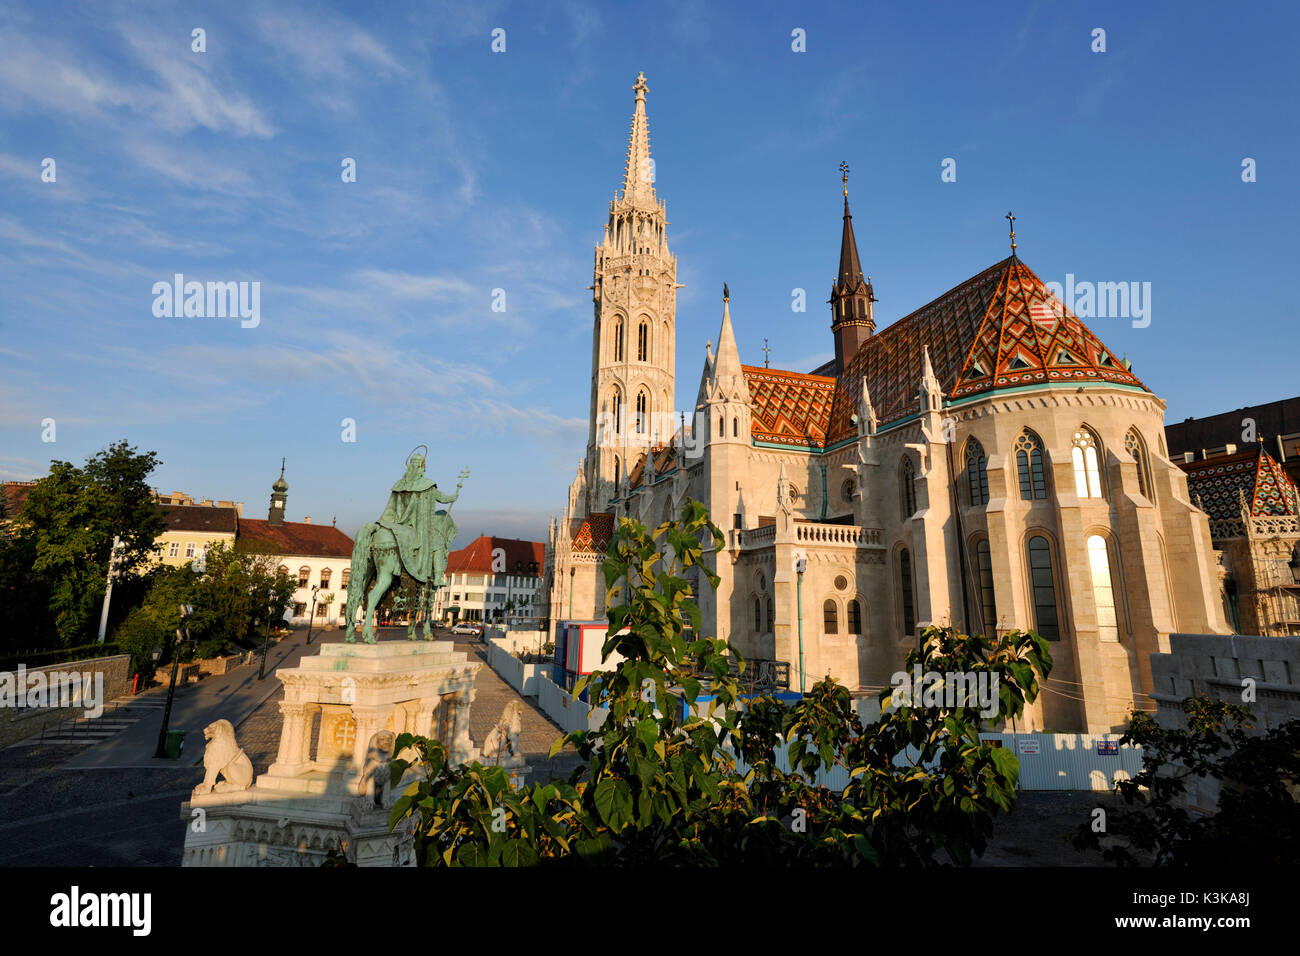 Hungary, Budapest, Buda district, Saint-Mathias church, Castle Hill listed as World Heritage by UNESCO - Stock Image